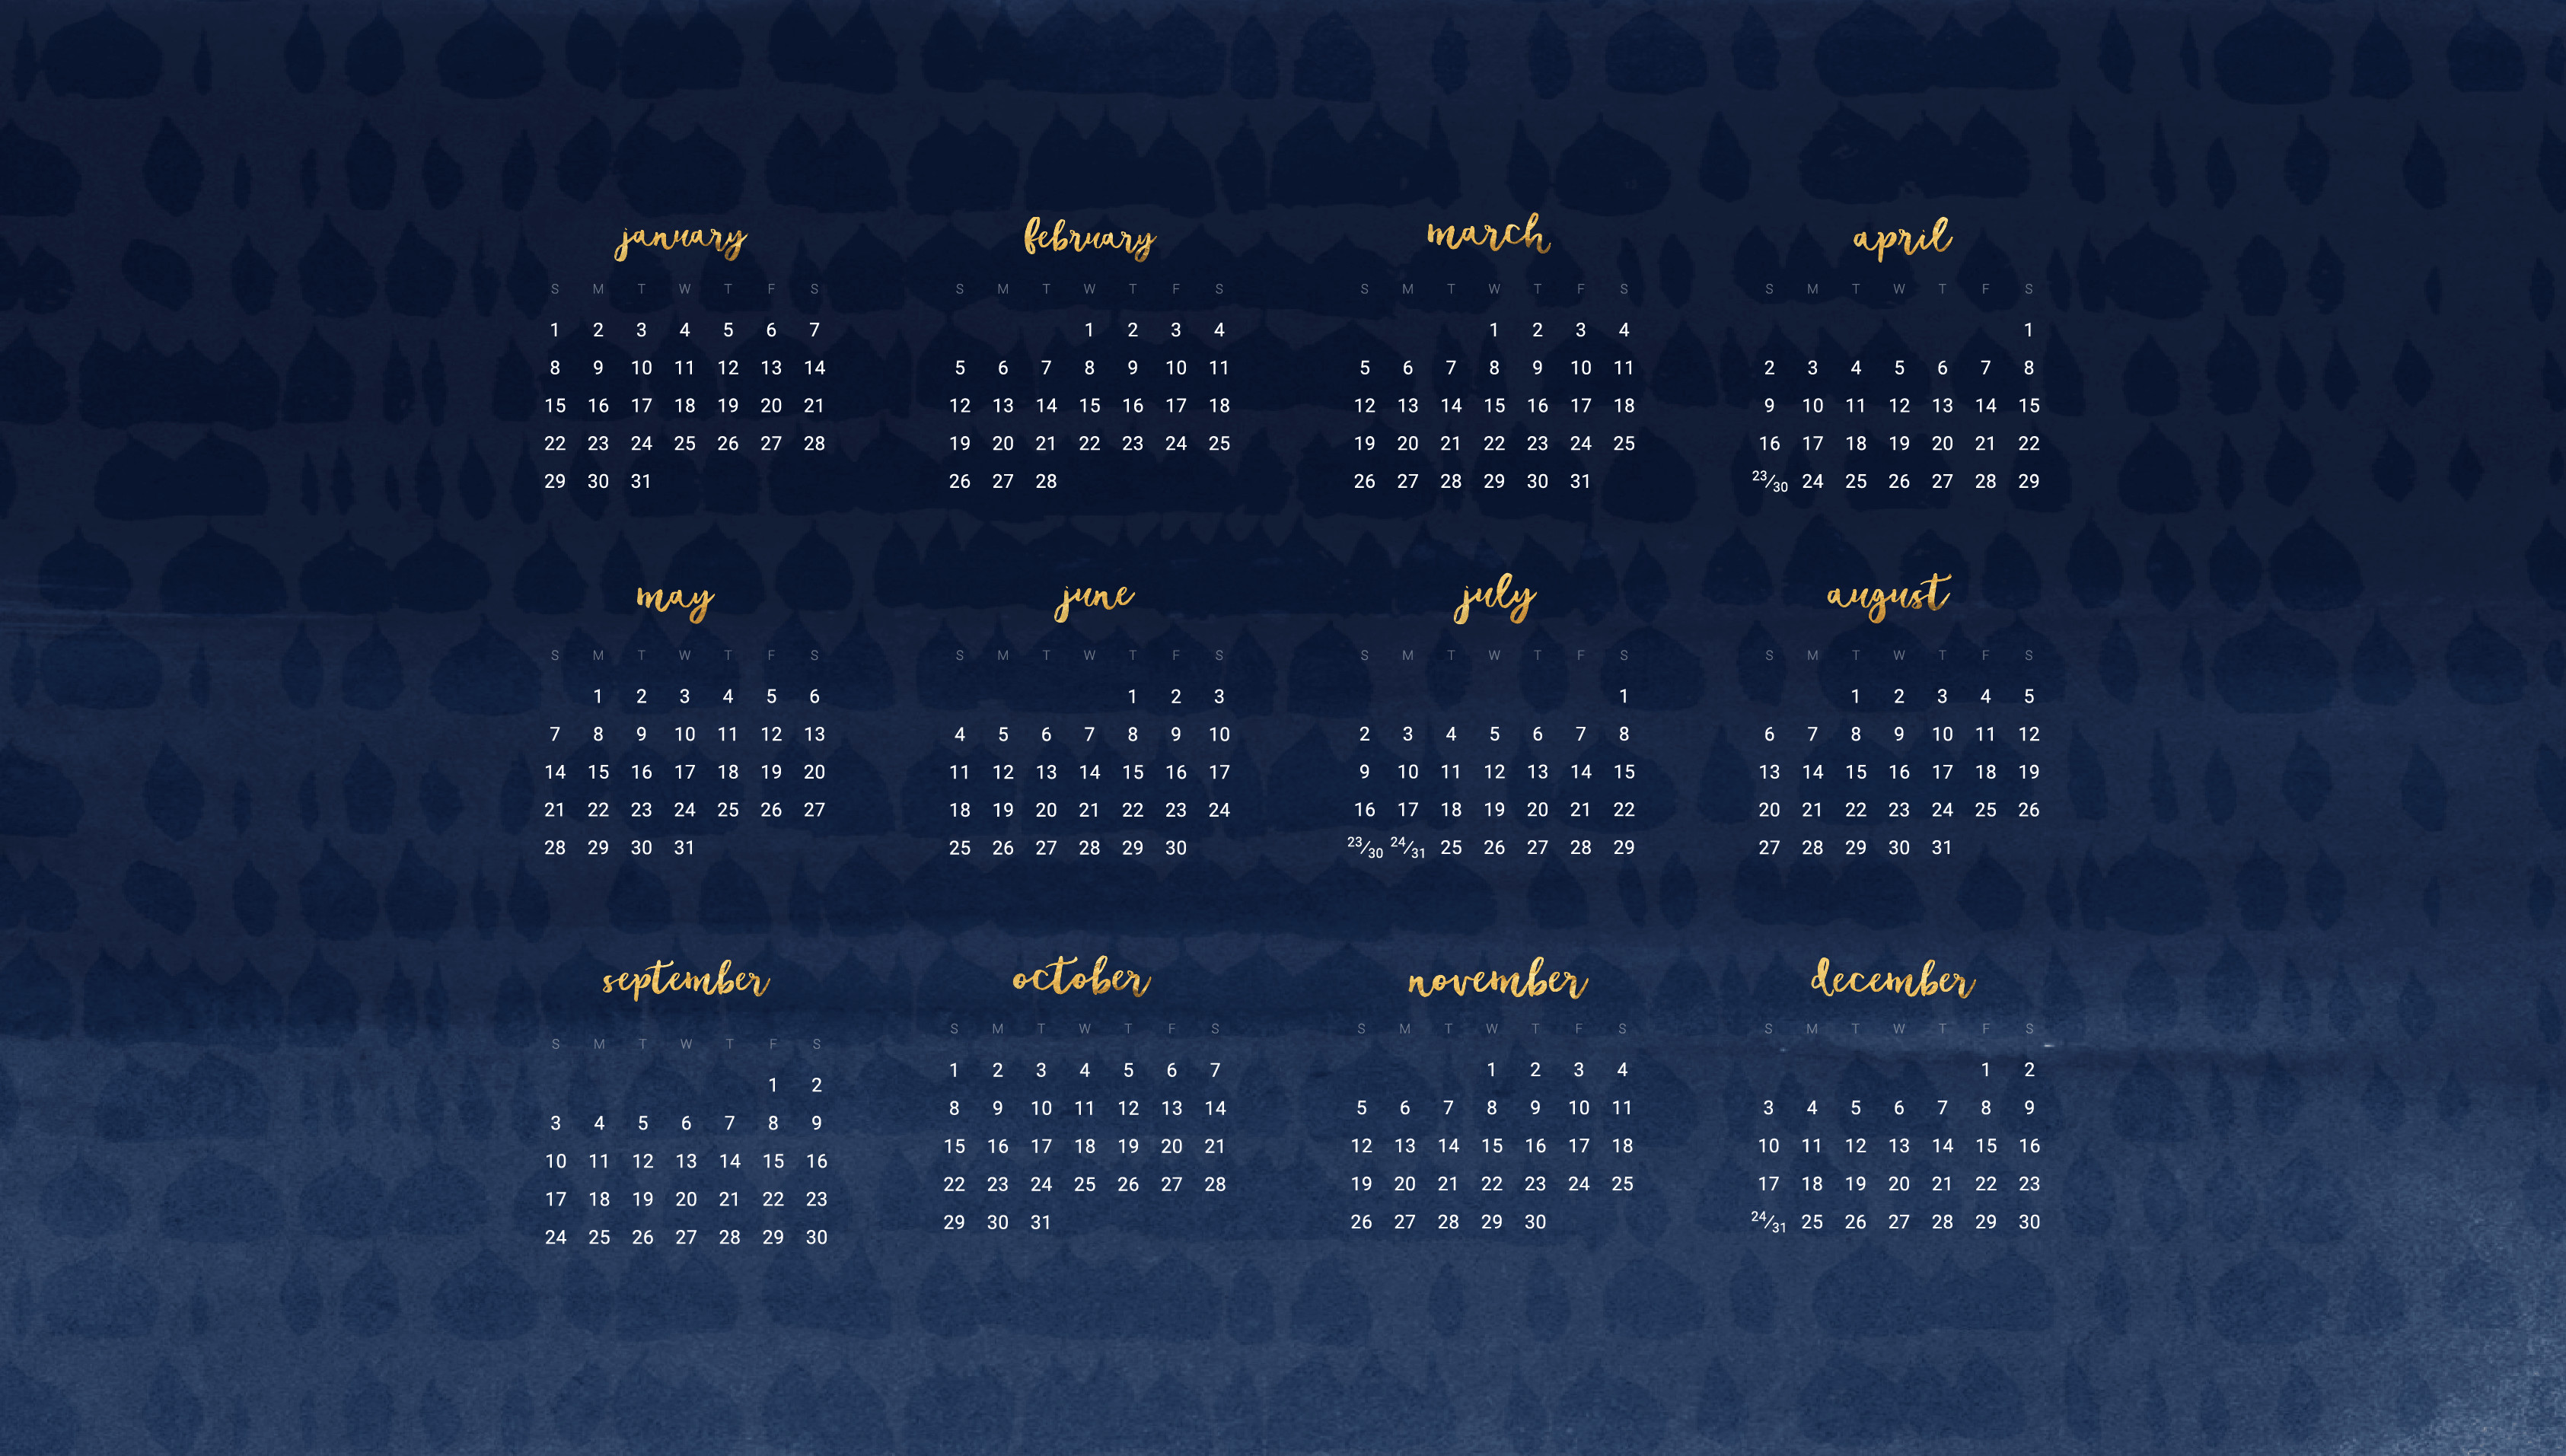 Res: 3371x1913, Audrey from Oh So Lovely Blog shares 16+ FREE 2017 desktop wallpaper  calendars. There are lots of colors and patterns to choose from. Download  yours today!